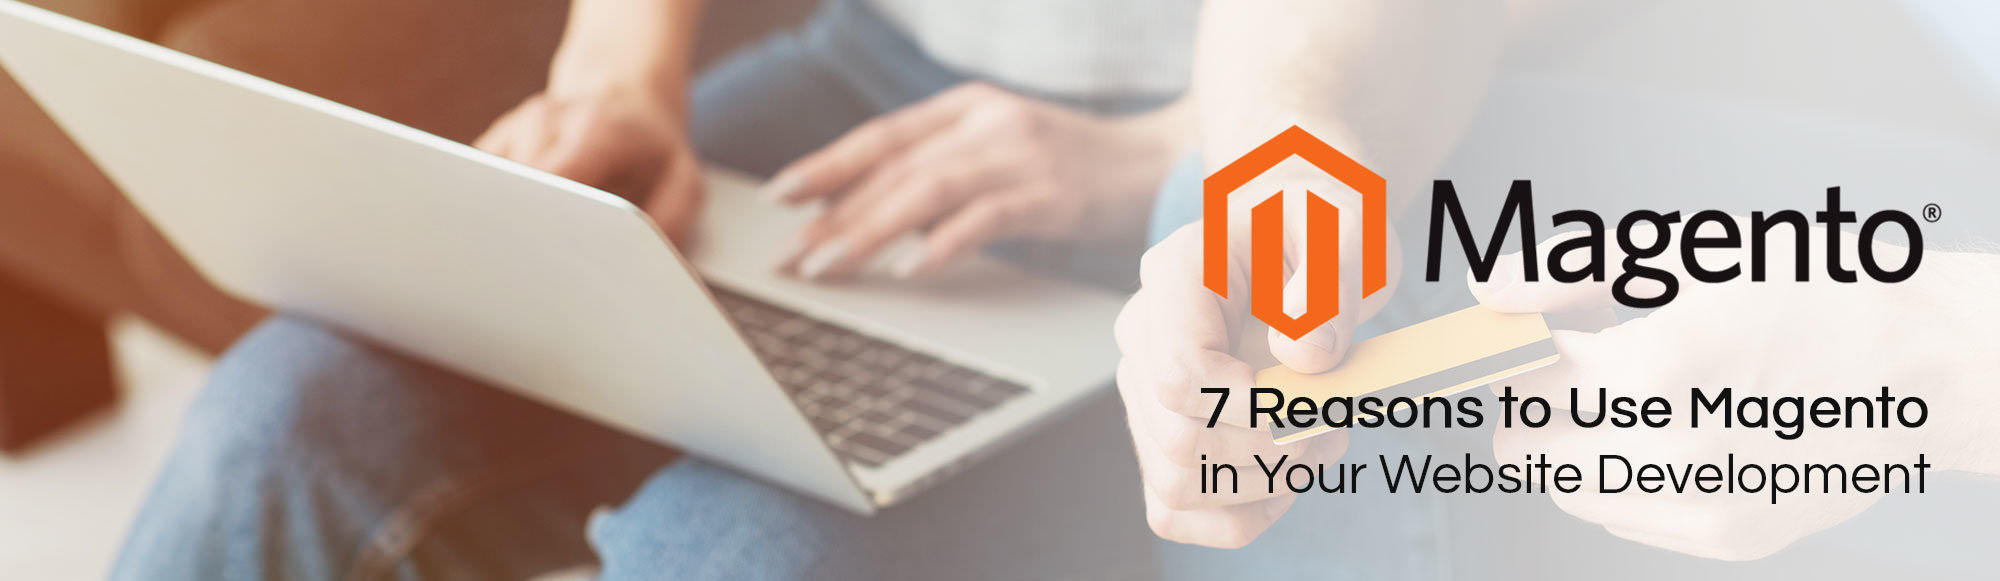 7 great reasons to use magento in your website development